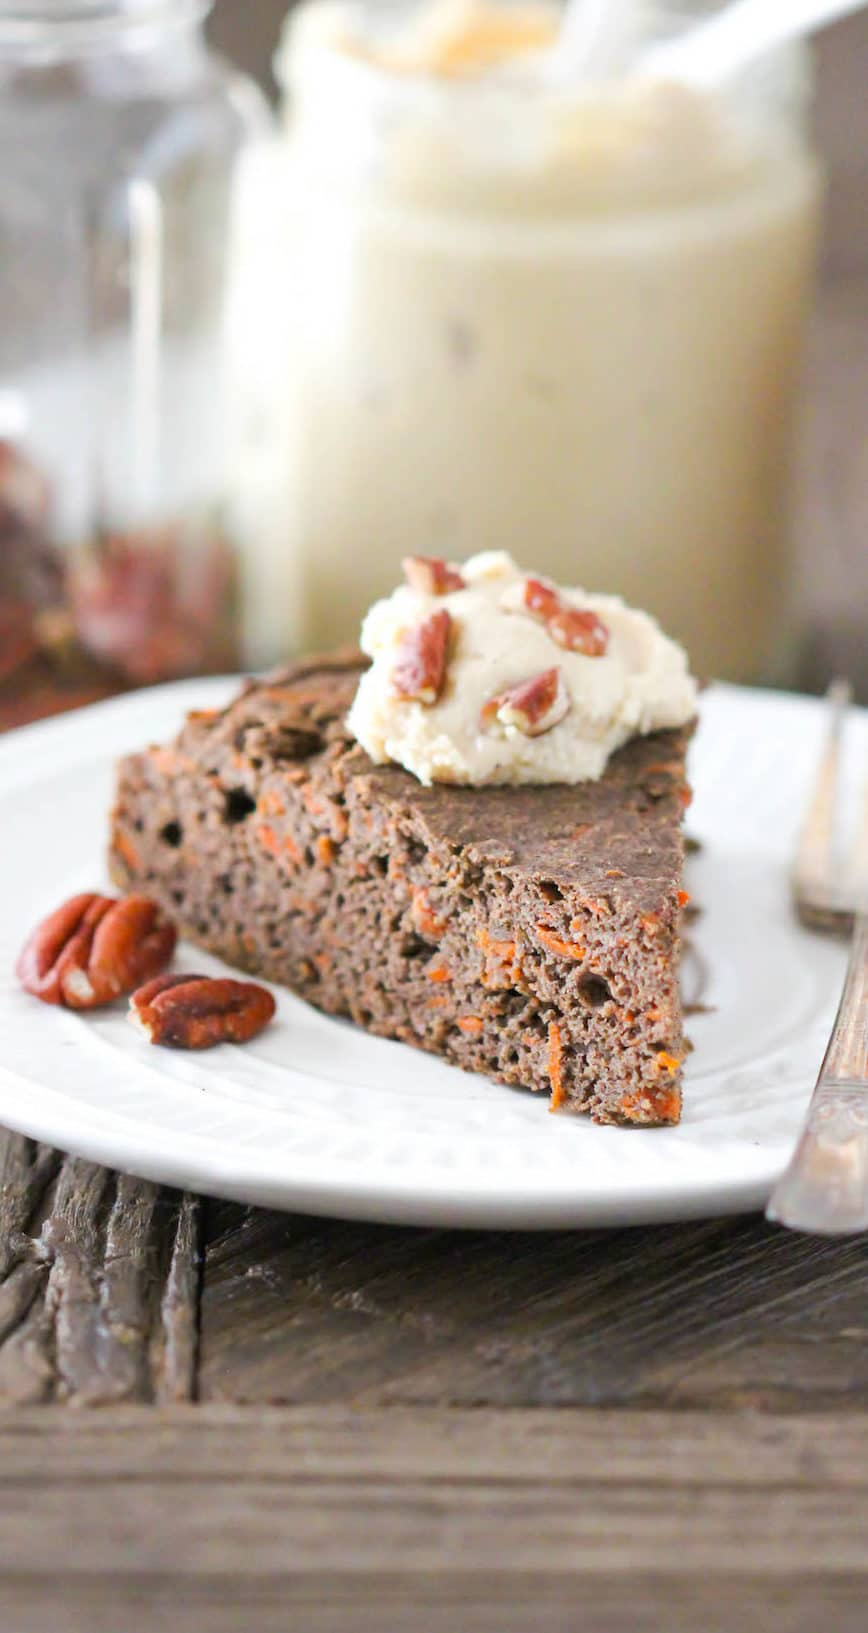 Healthy Buckwheat Carrot Cake Recipe Gluten Free Dairy Free Vegan